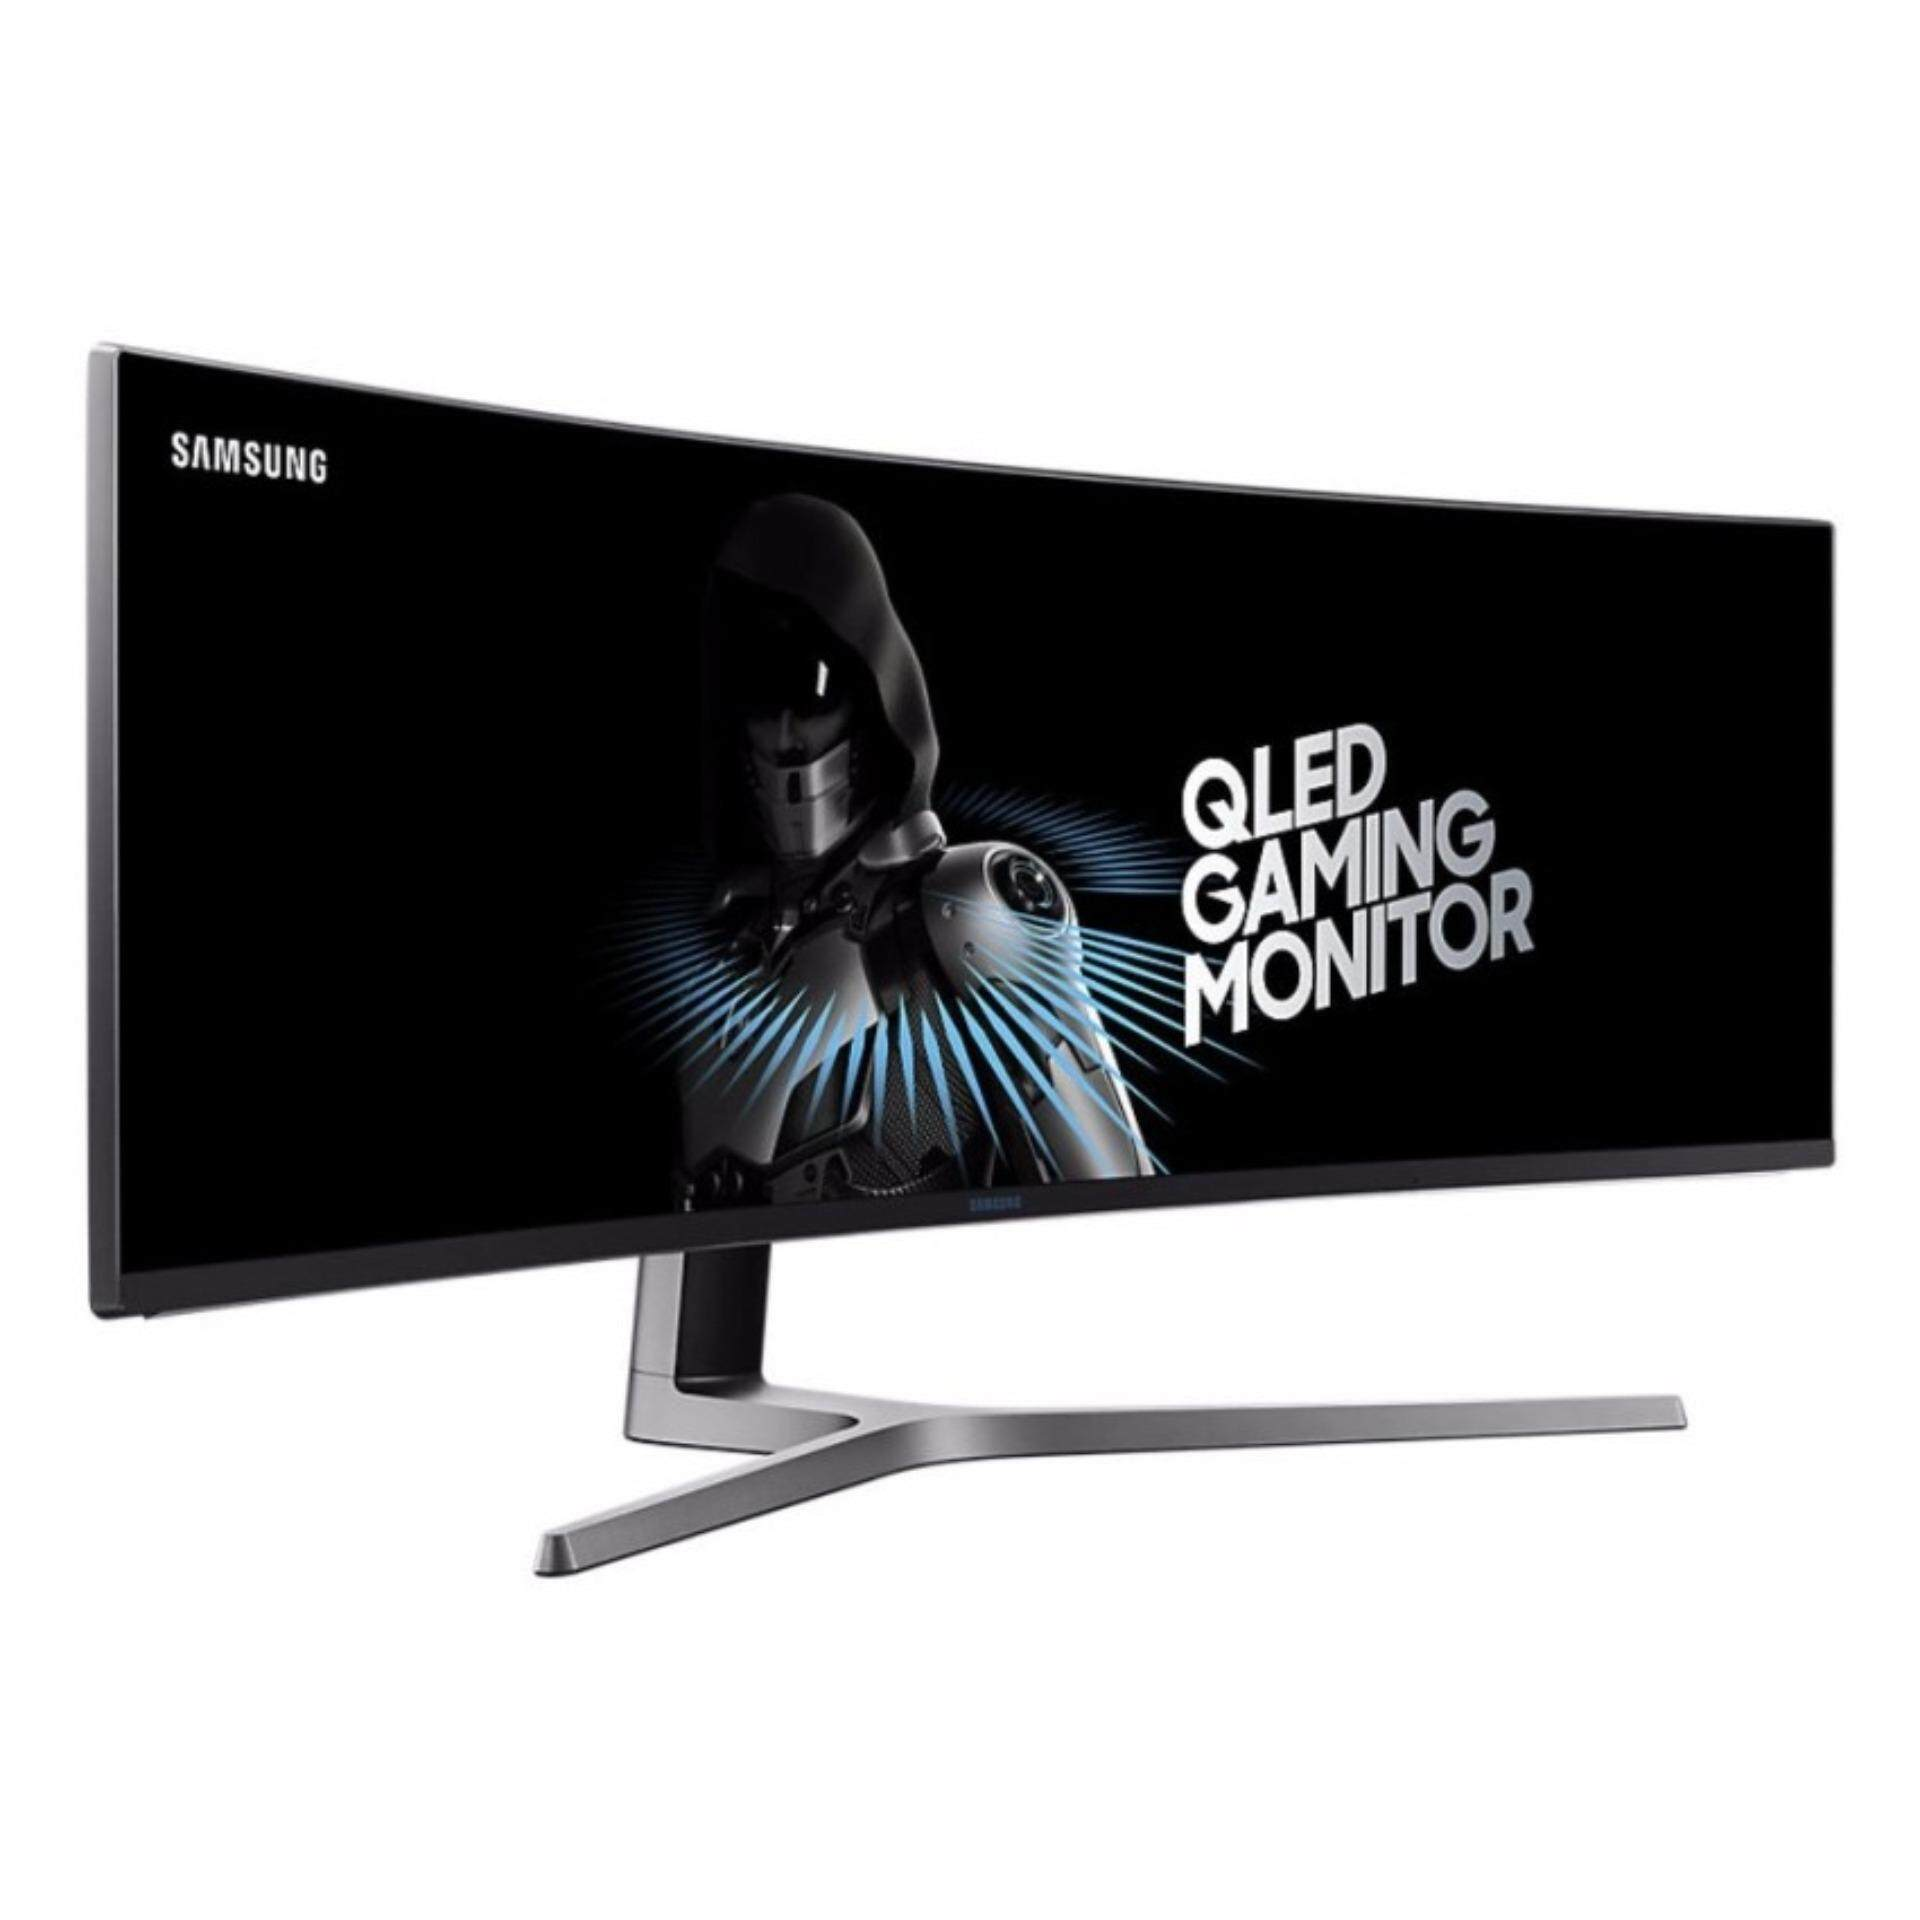 Samsung 49 QLED Gaming Monitor CHG90 with Super Ultra-Wide Screen LC49HG90DMEXXM Malaysia